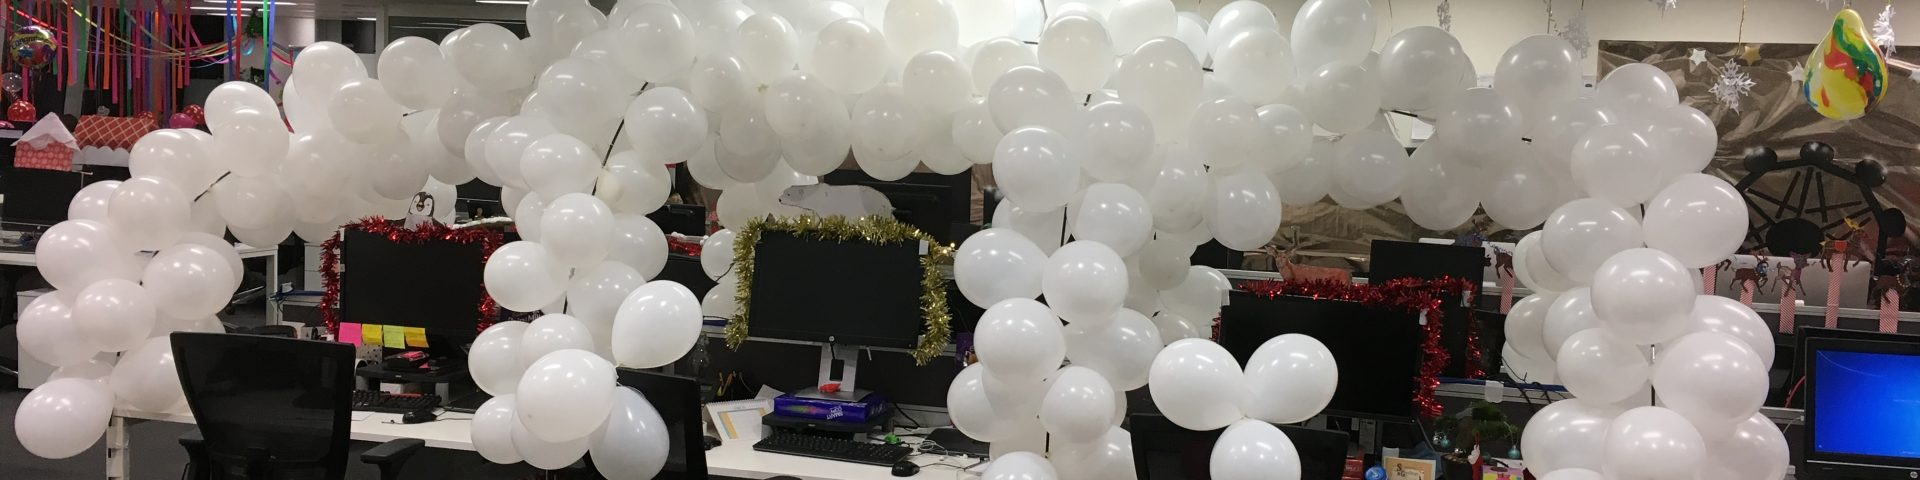 Christmas Office Desk Igloo